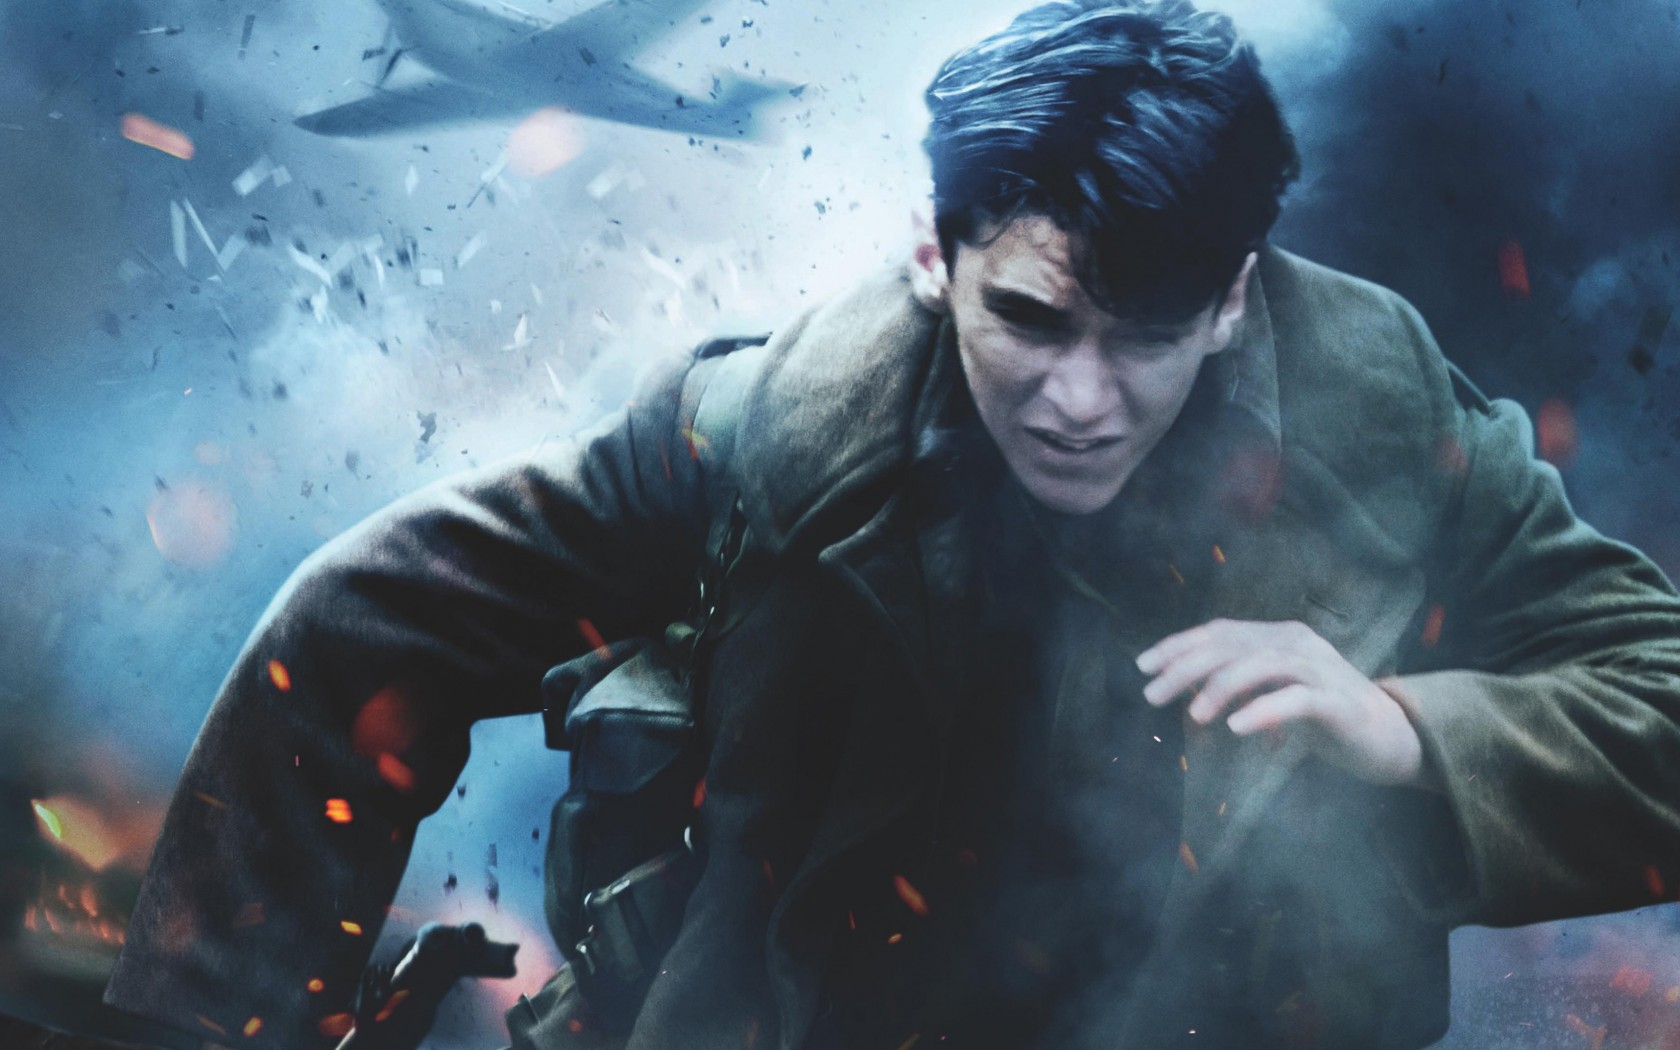 Love Birds Cute Wallpaper Fionn Whitehead In Dunkirk 2017 Wallpapers Hd Wallpapers